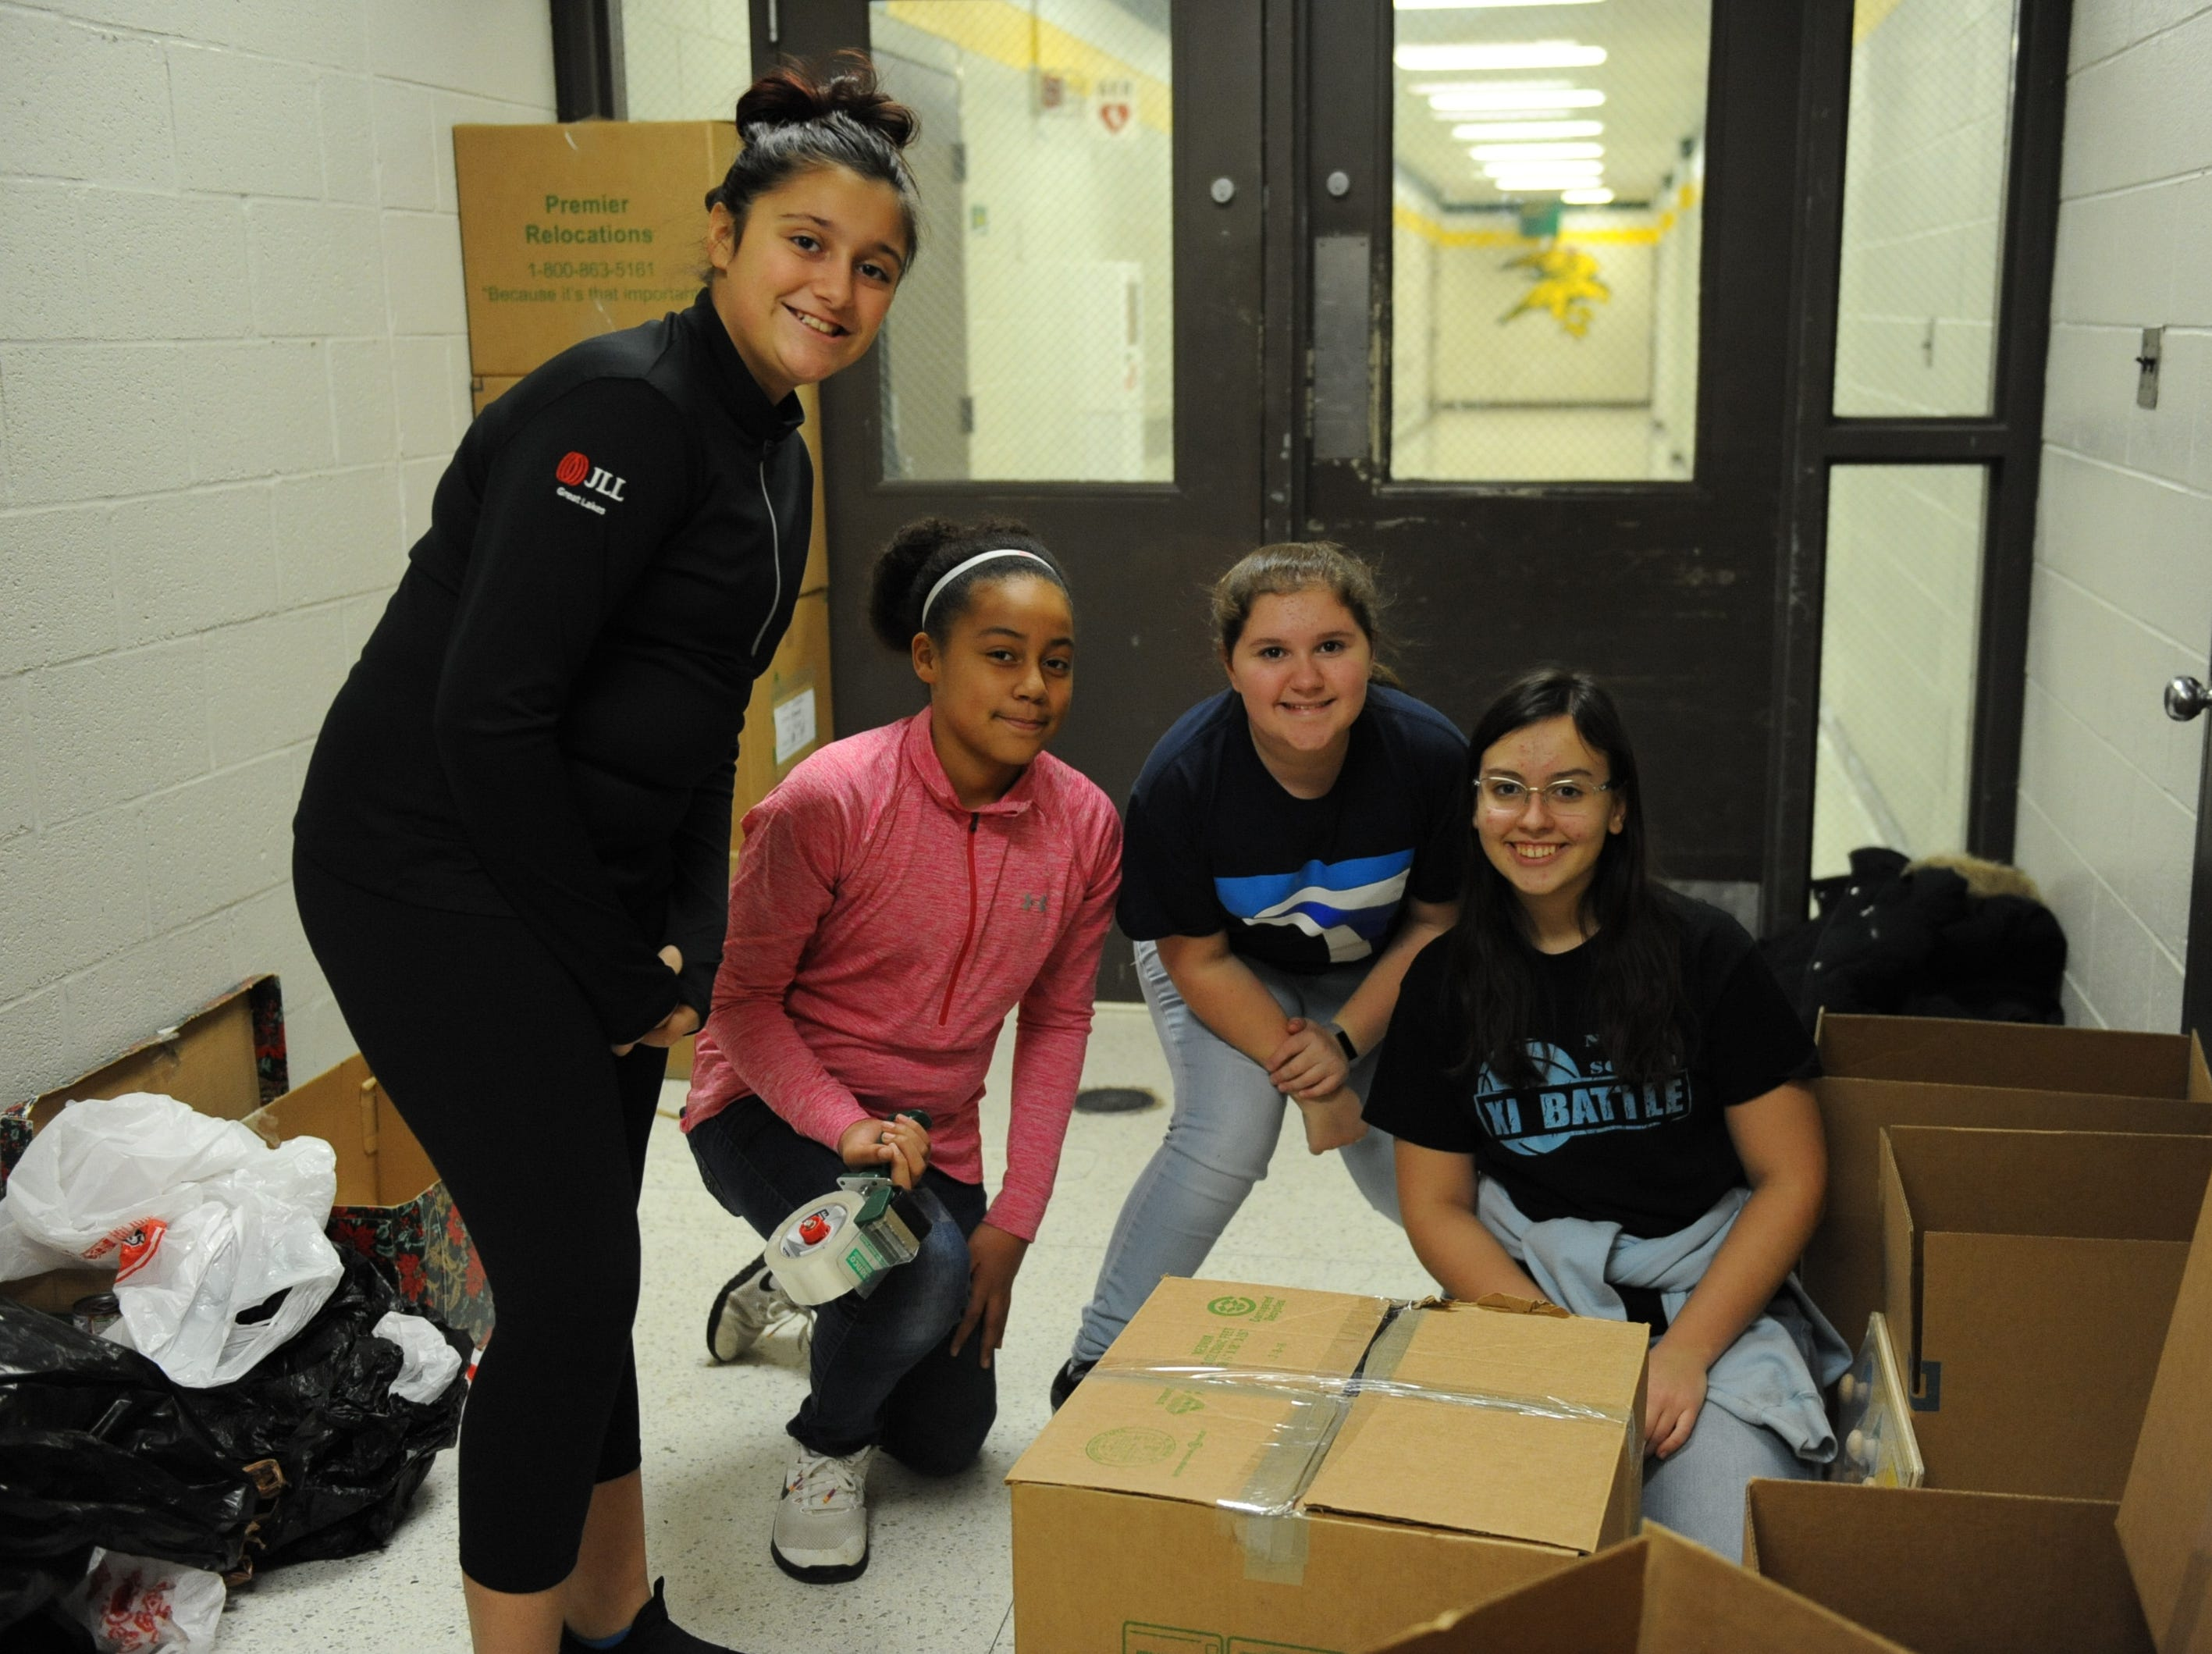 Power Middle School students Soseh Broglin, Edimari King, Abigail Brooke and Gabriella Camaj pack items that were brought to the annual charity game Friday evening.